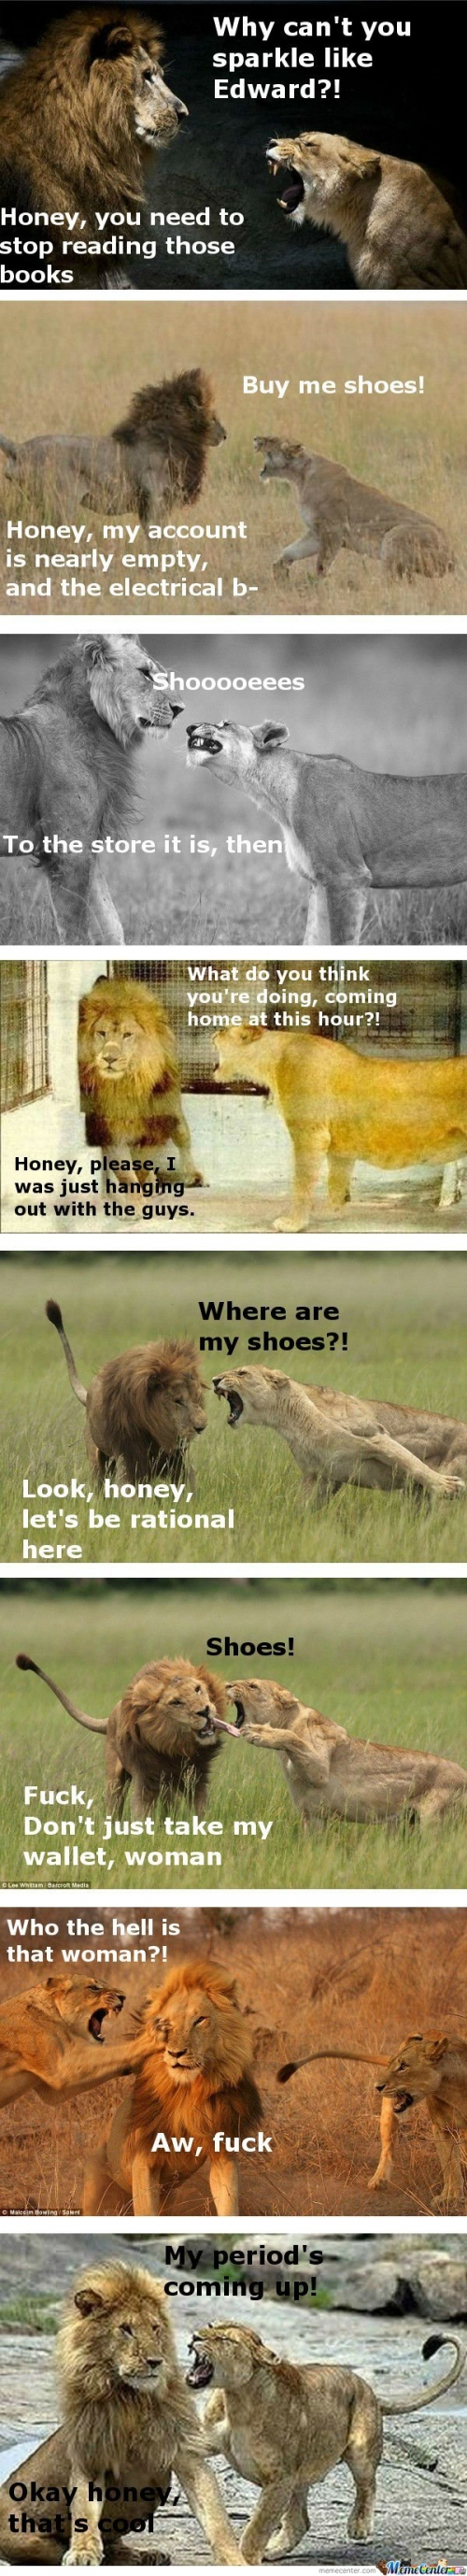 The life of a married man - Lions